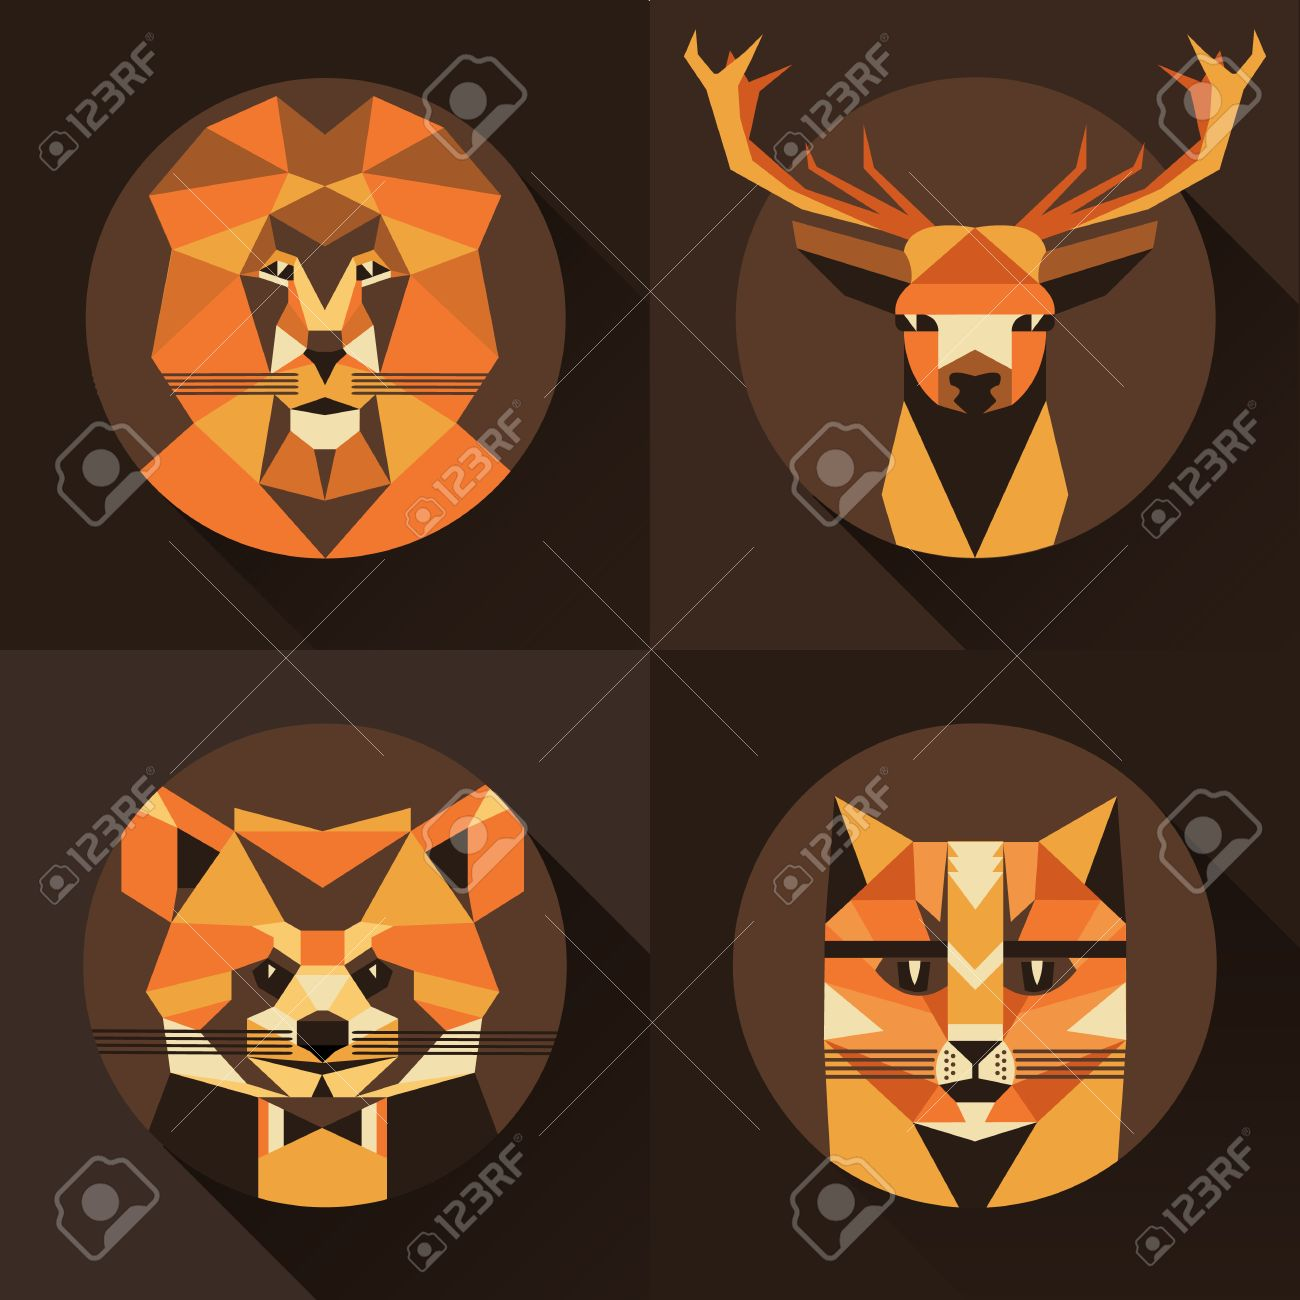 Flat trendy low polygon style animal avatar icon set. Vector illustration. Cat,fox, deer,lion, raccoon Banque d'images - 50432062